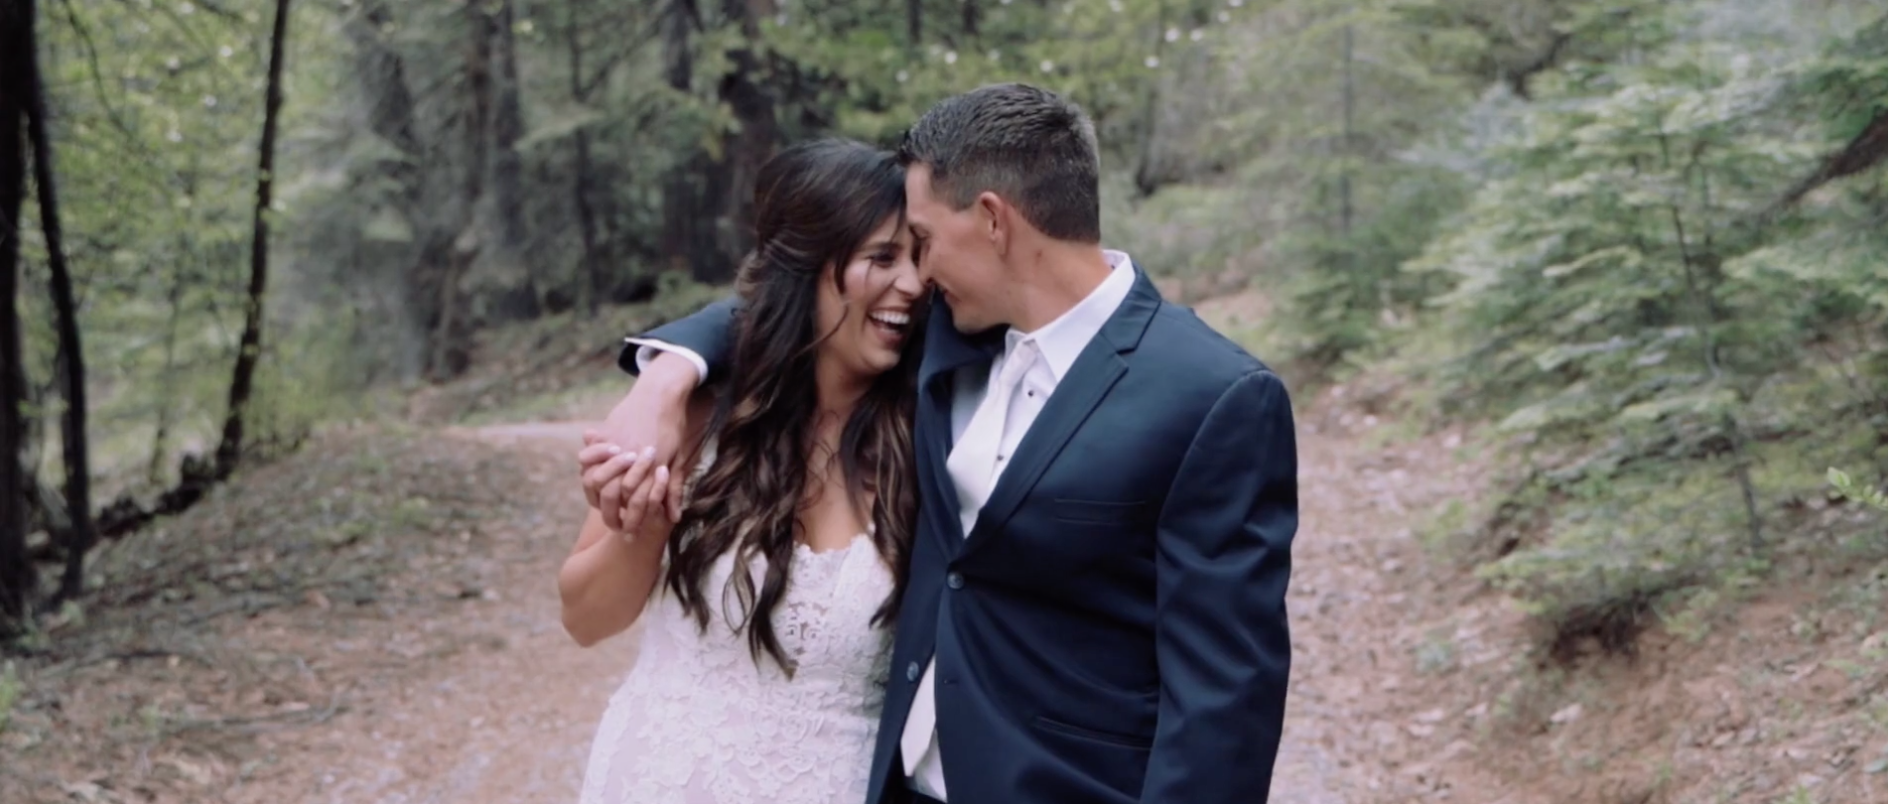 Brooke  + Matt  | Oakhurst, California | Paradise Springs